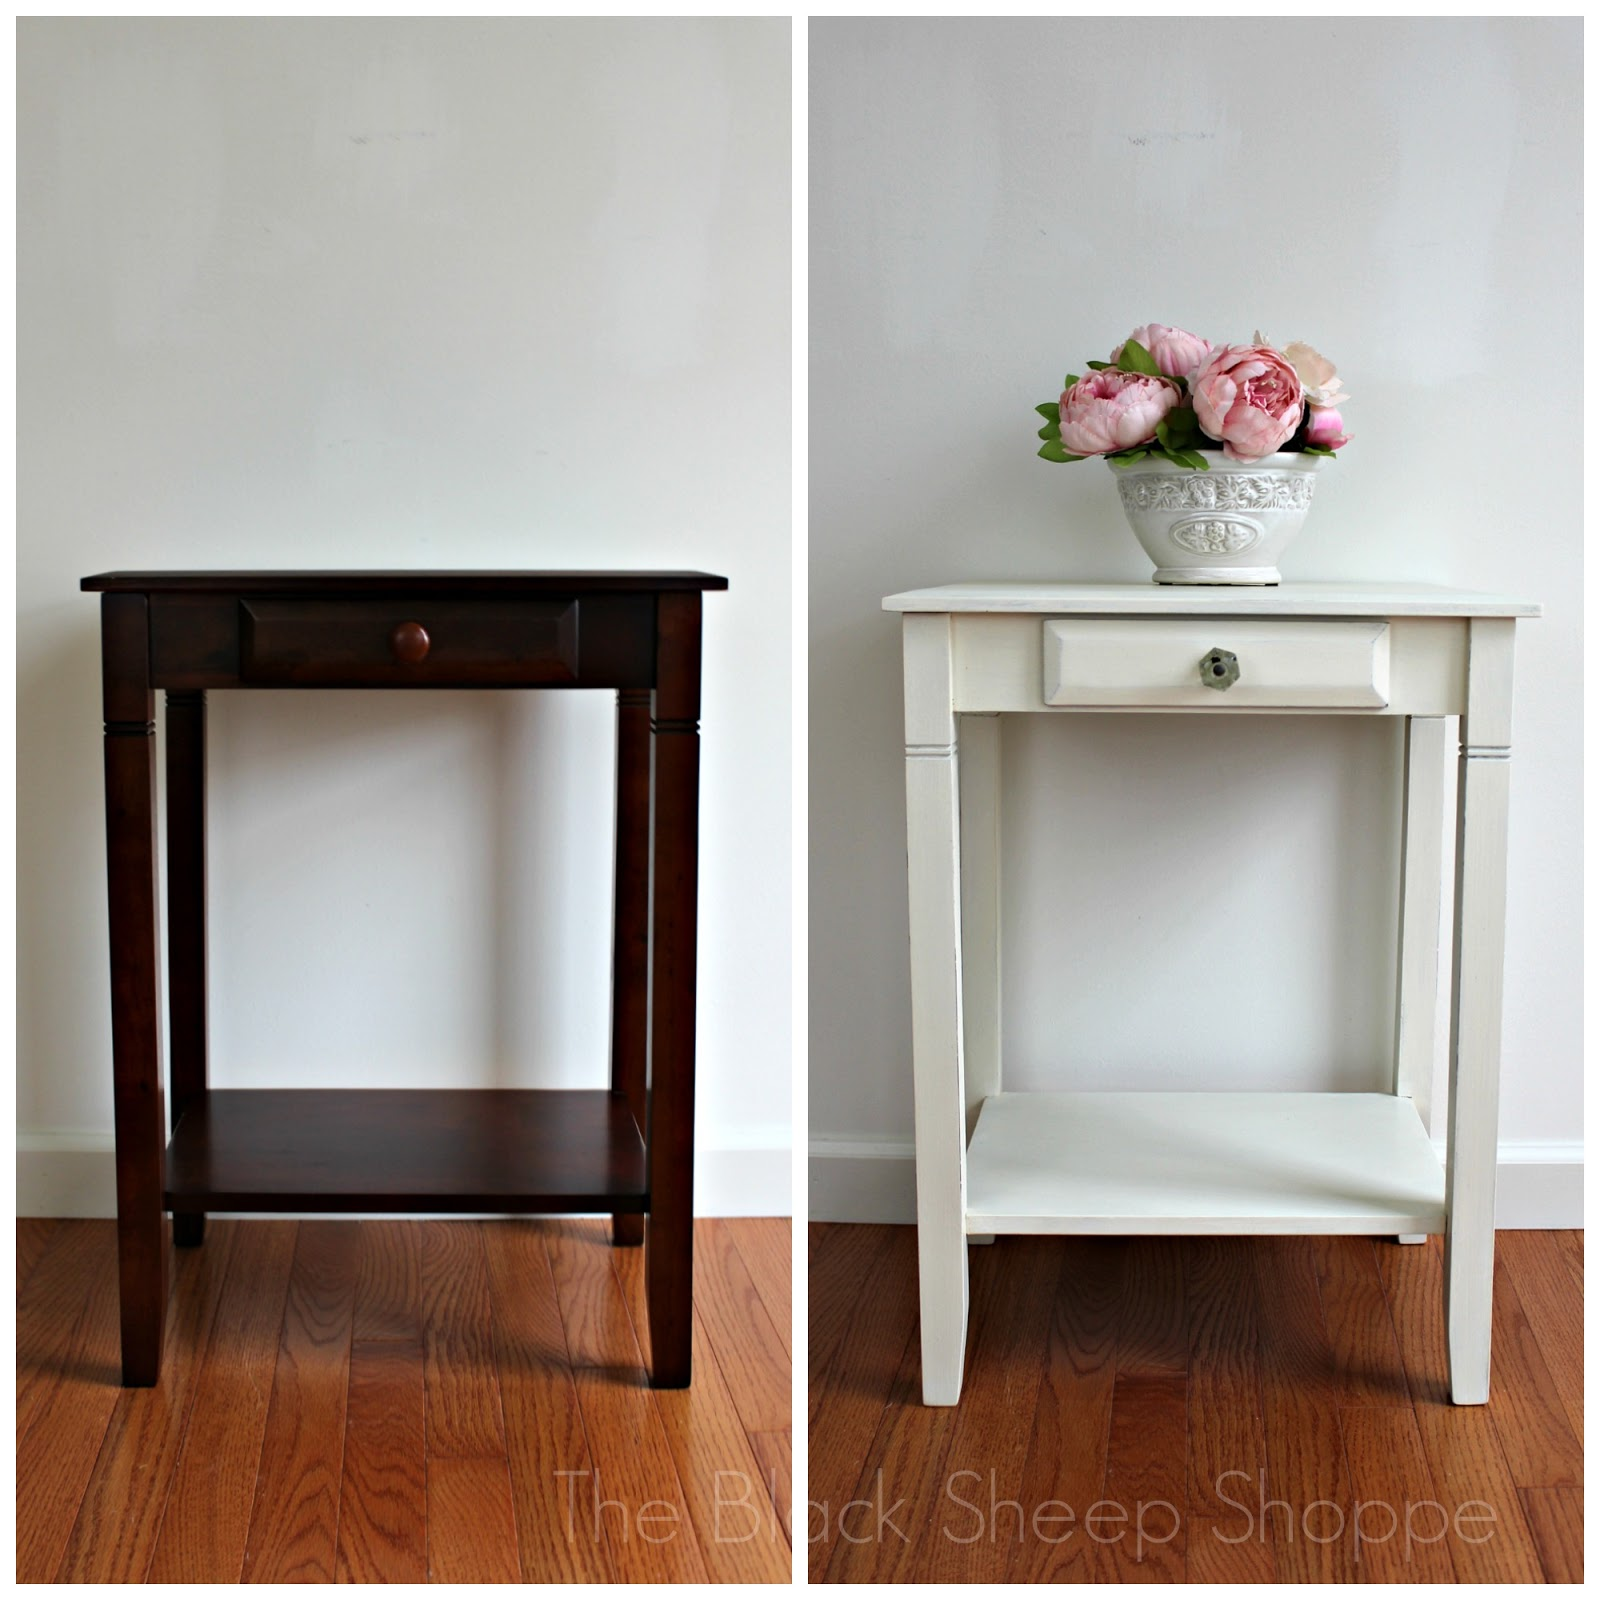 Nightstand before and after.